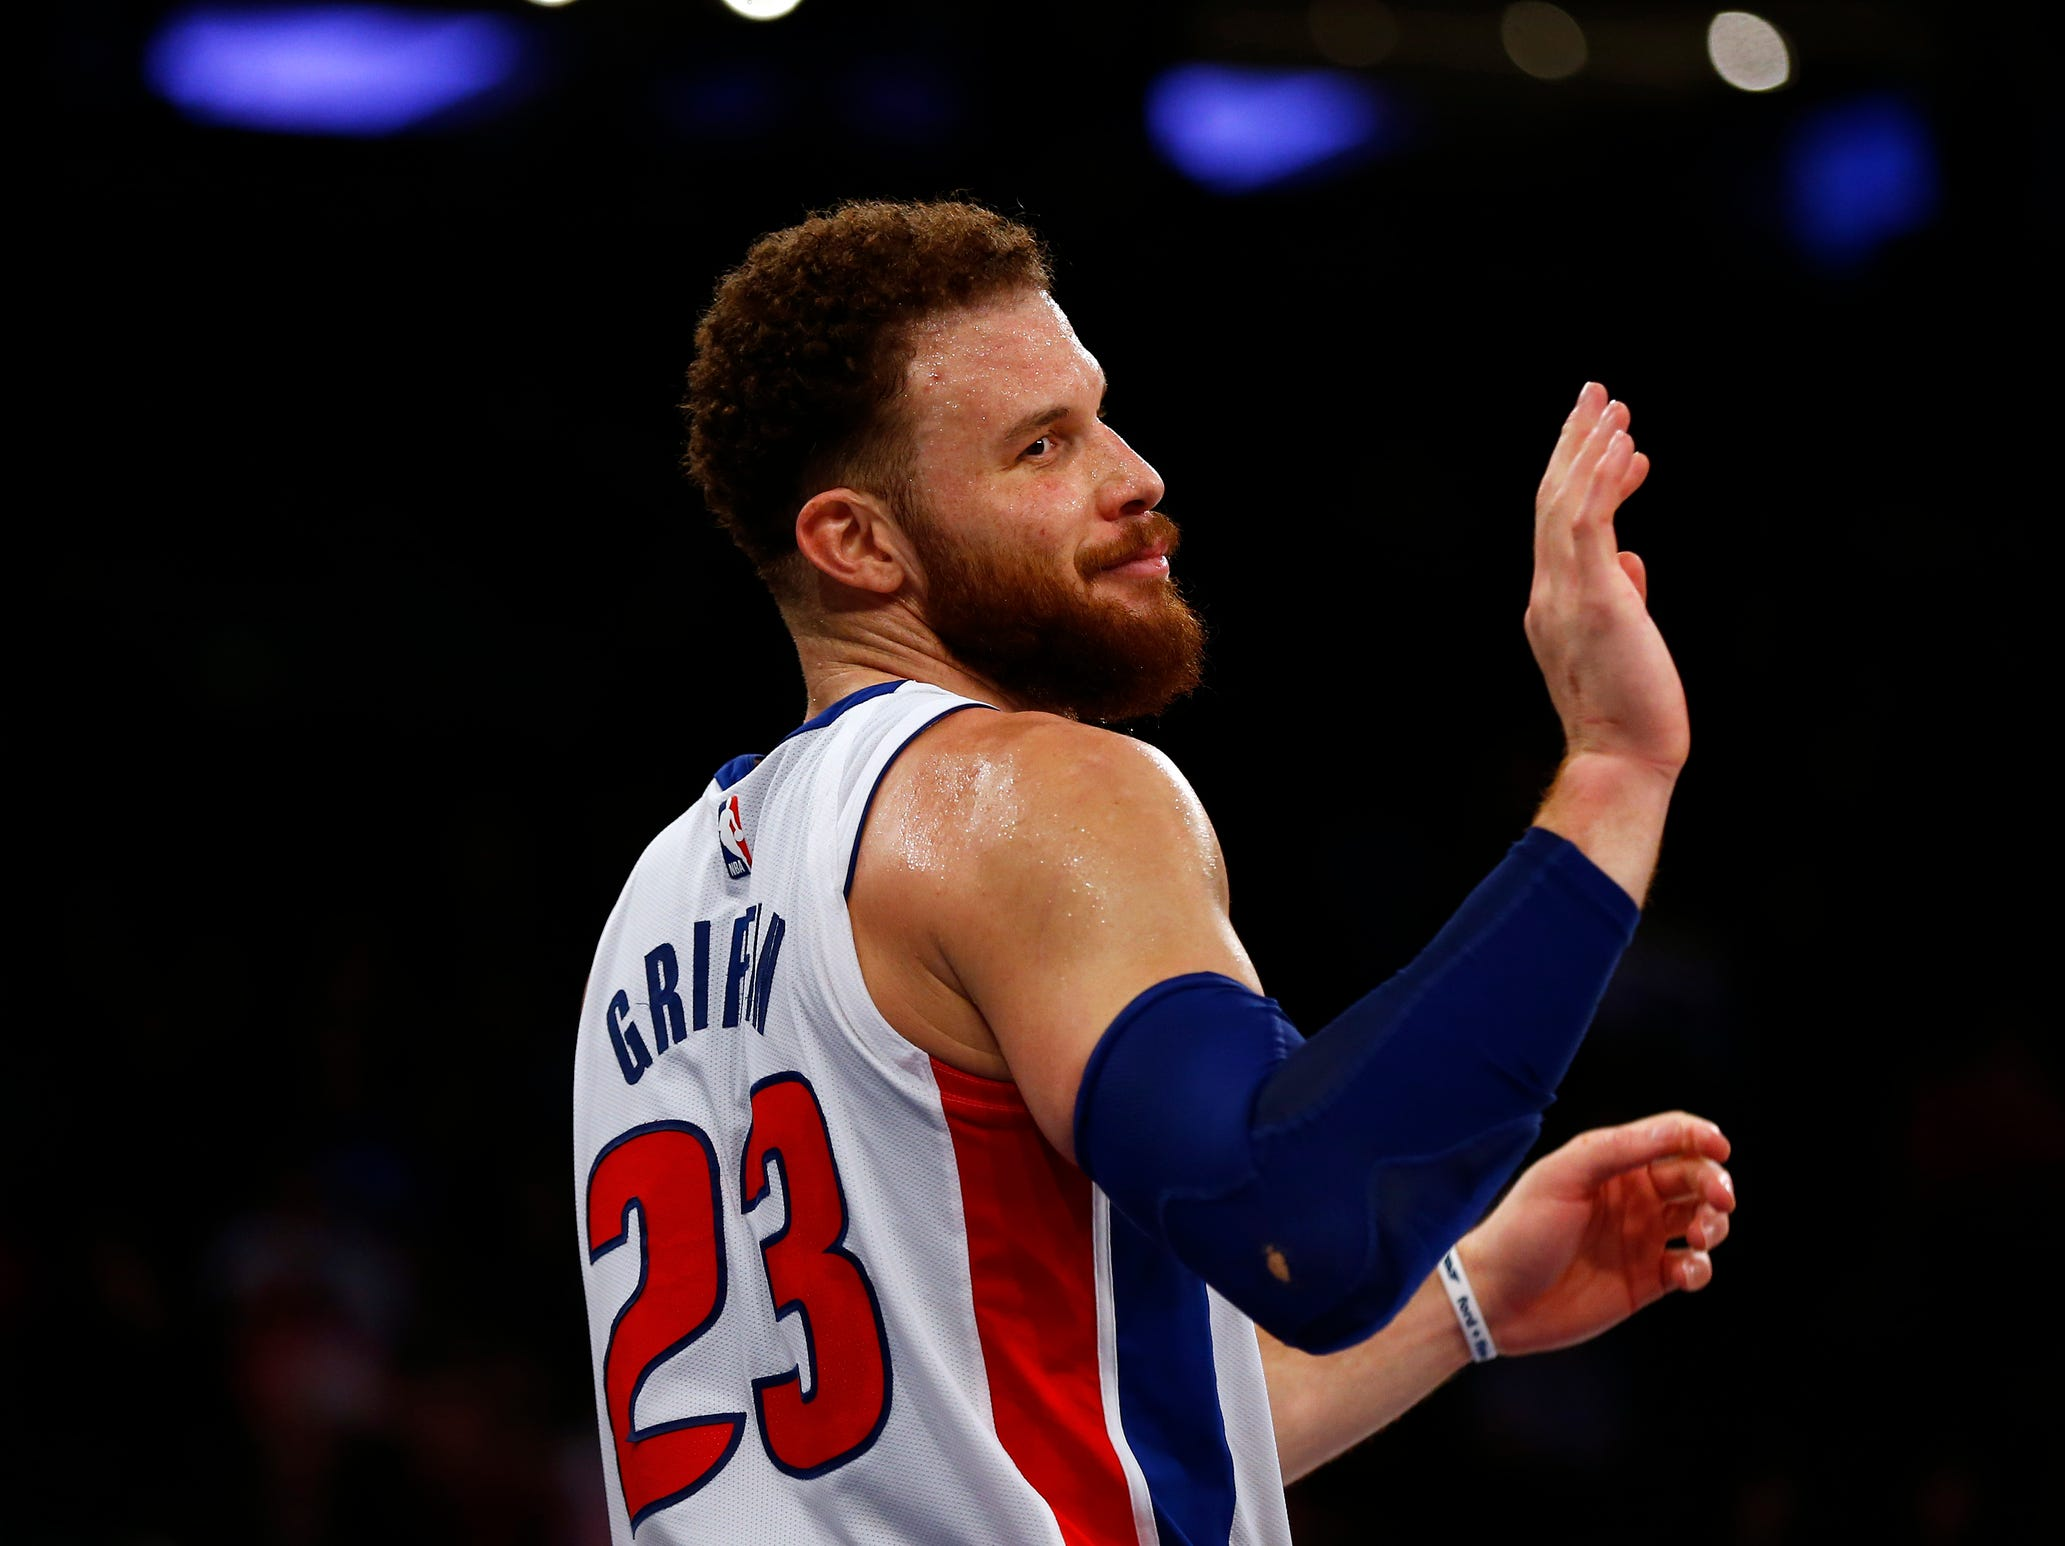 Blake Griffin is scoring a career-best 26.1 points per game this season.